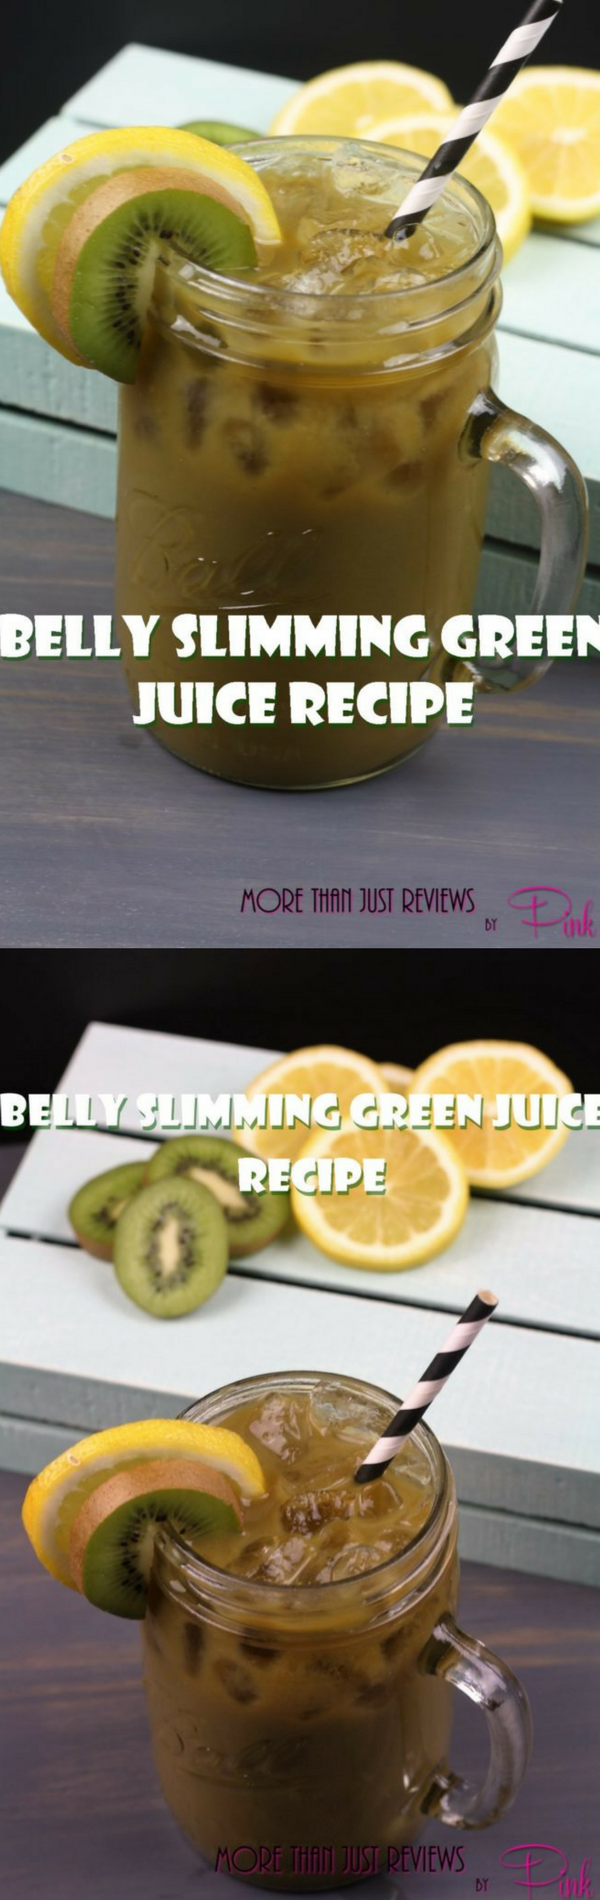 Belly Slimming Green Juice